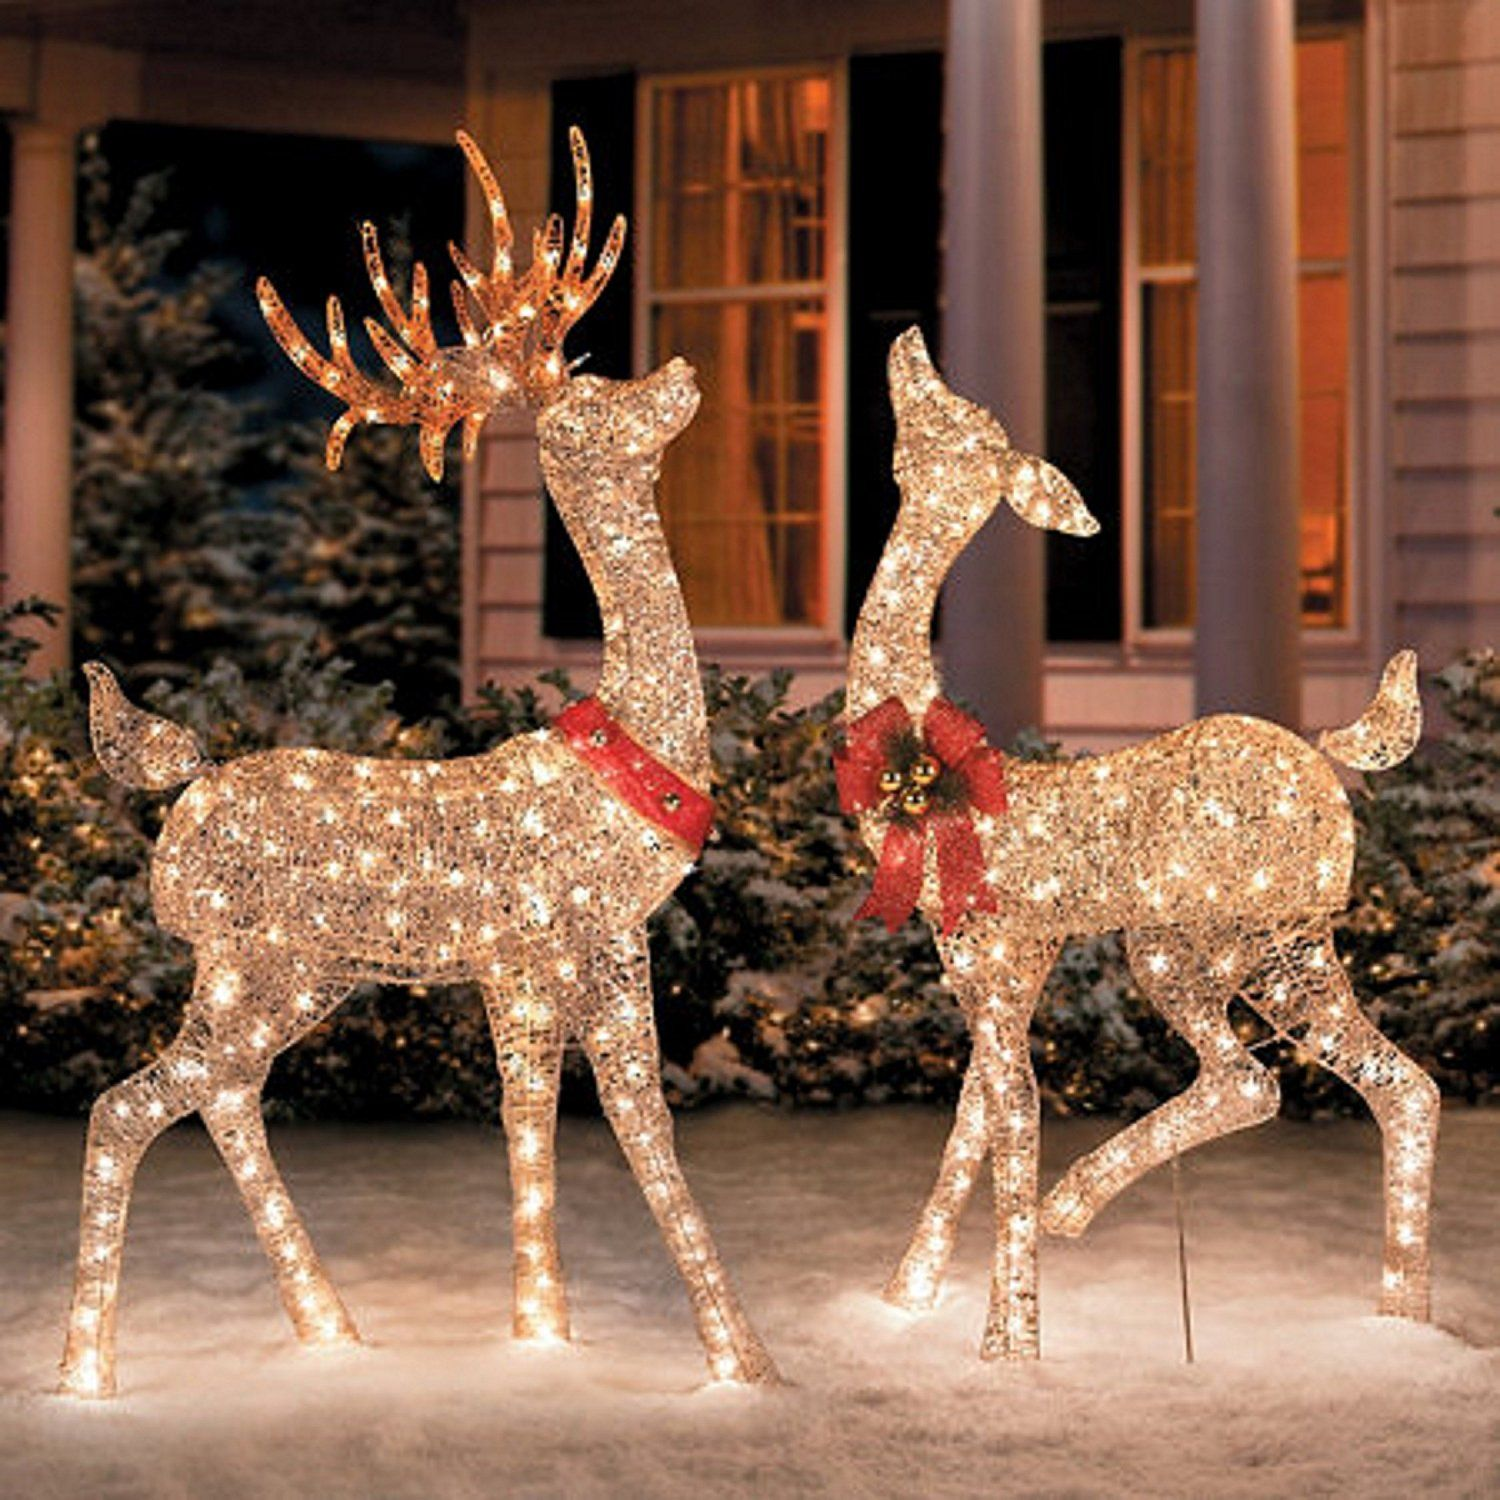 home decor photos decorations the outside christmas ideas nicole ja miller for plan depot decoration decorat scenic photo house around houses